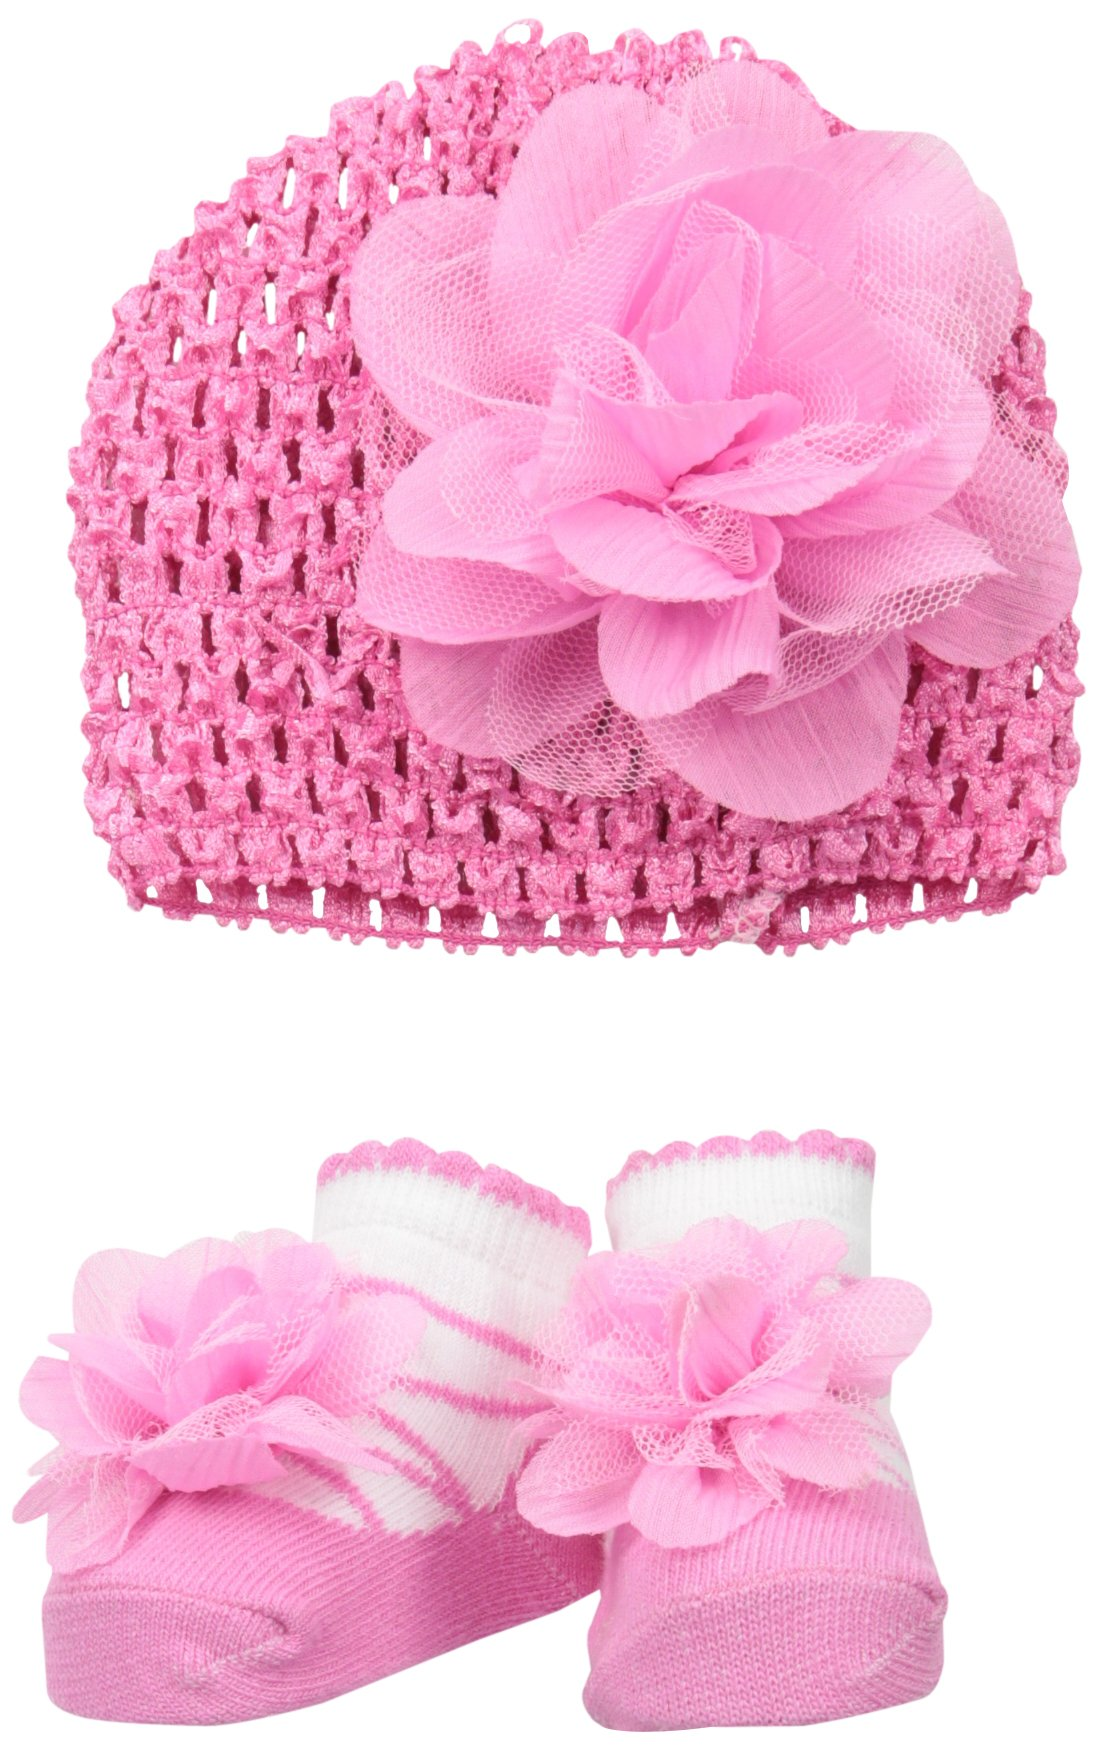 Little Me Baby Girls' Pink Tulle Flower Crochet Hat and Bootie Set, 0-12 Months by Little Me